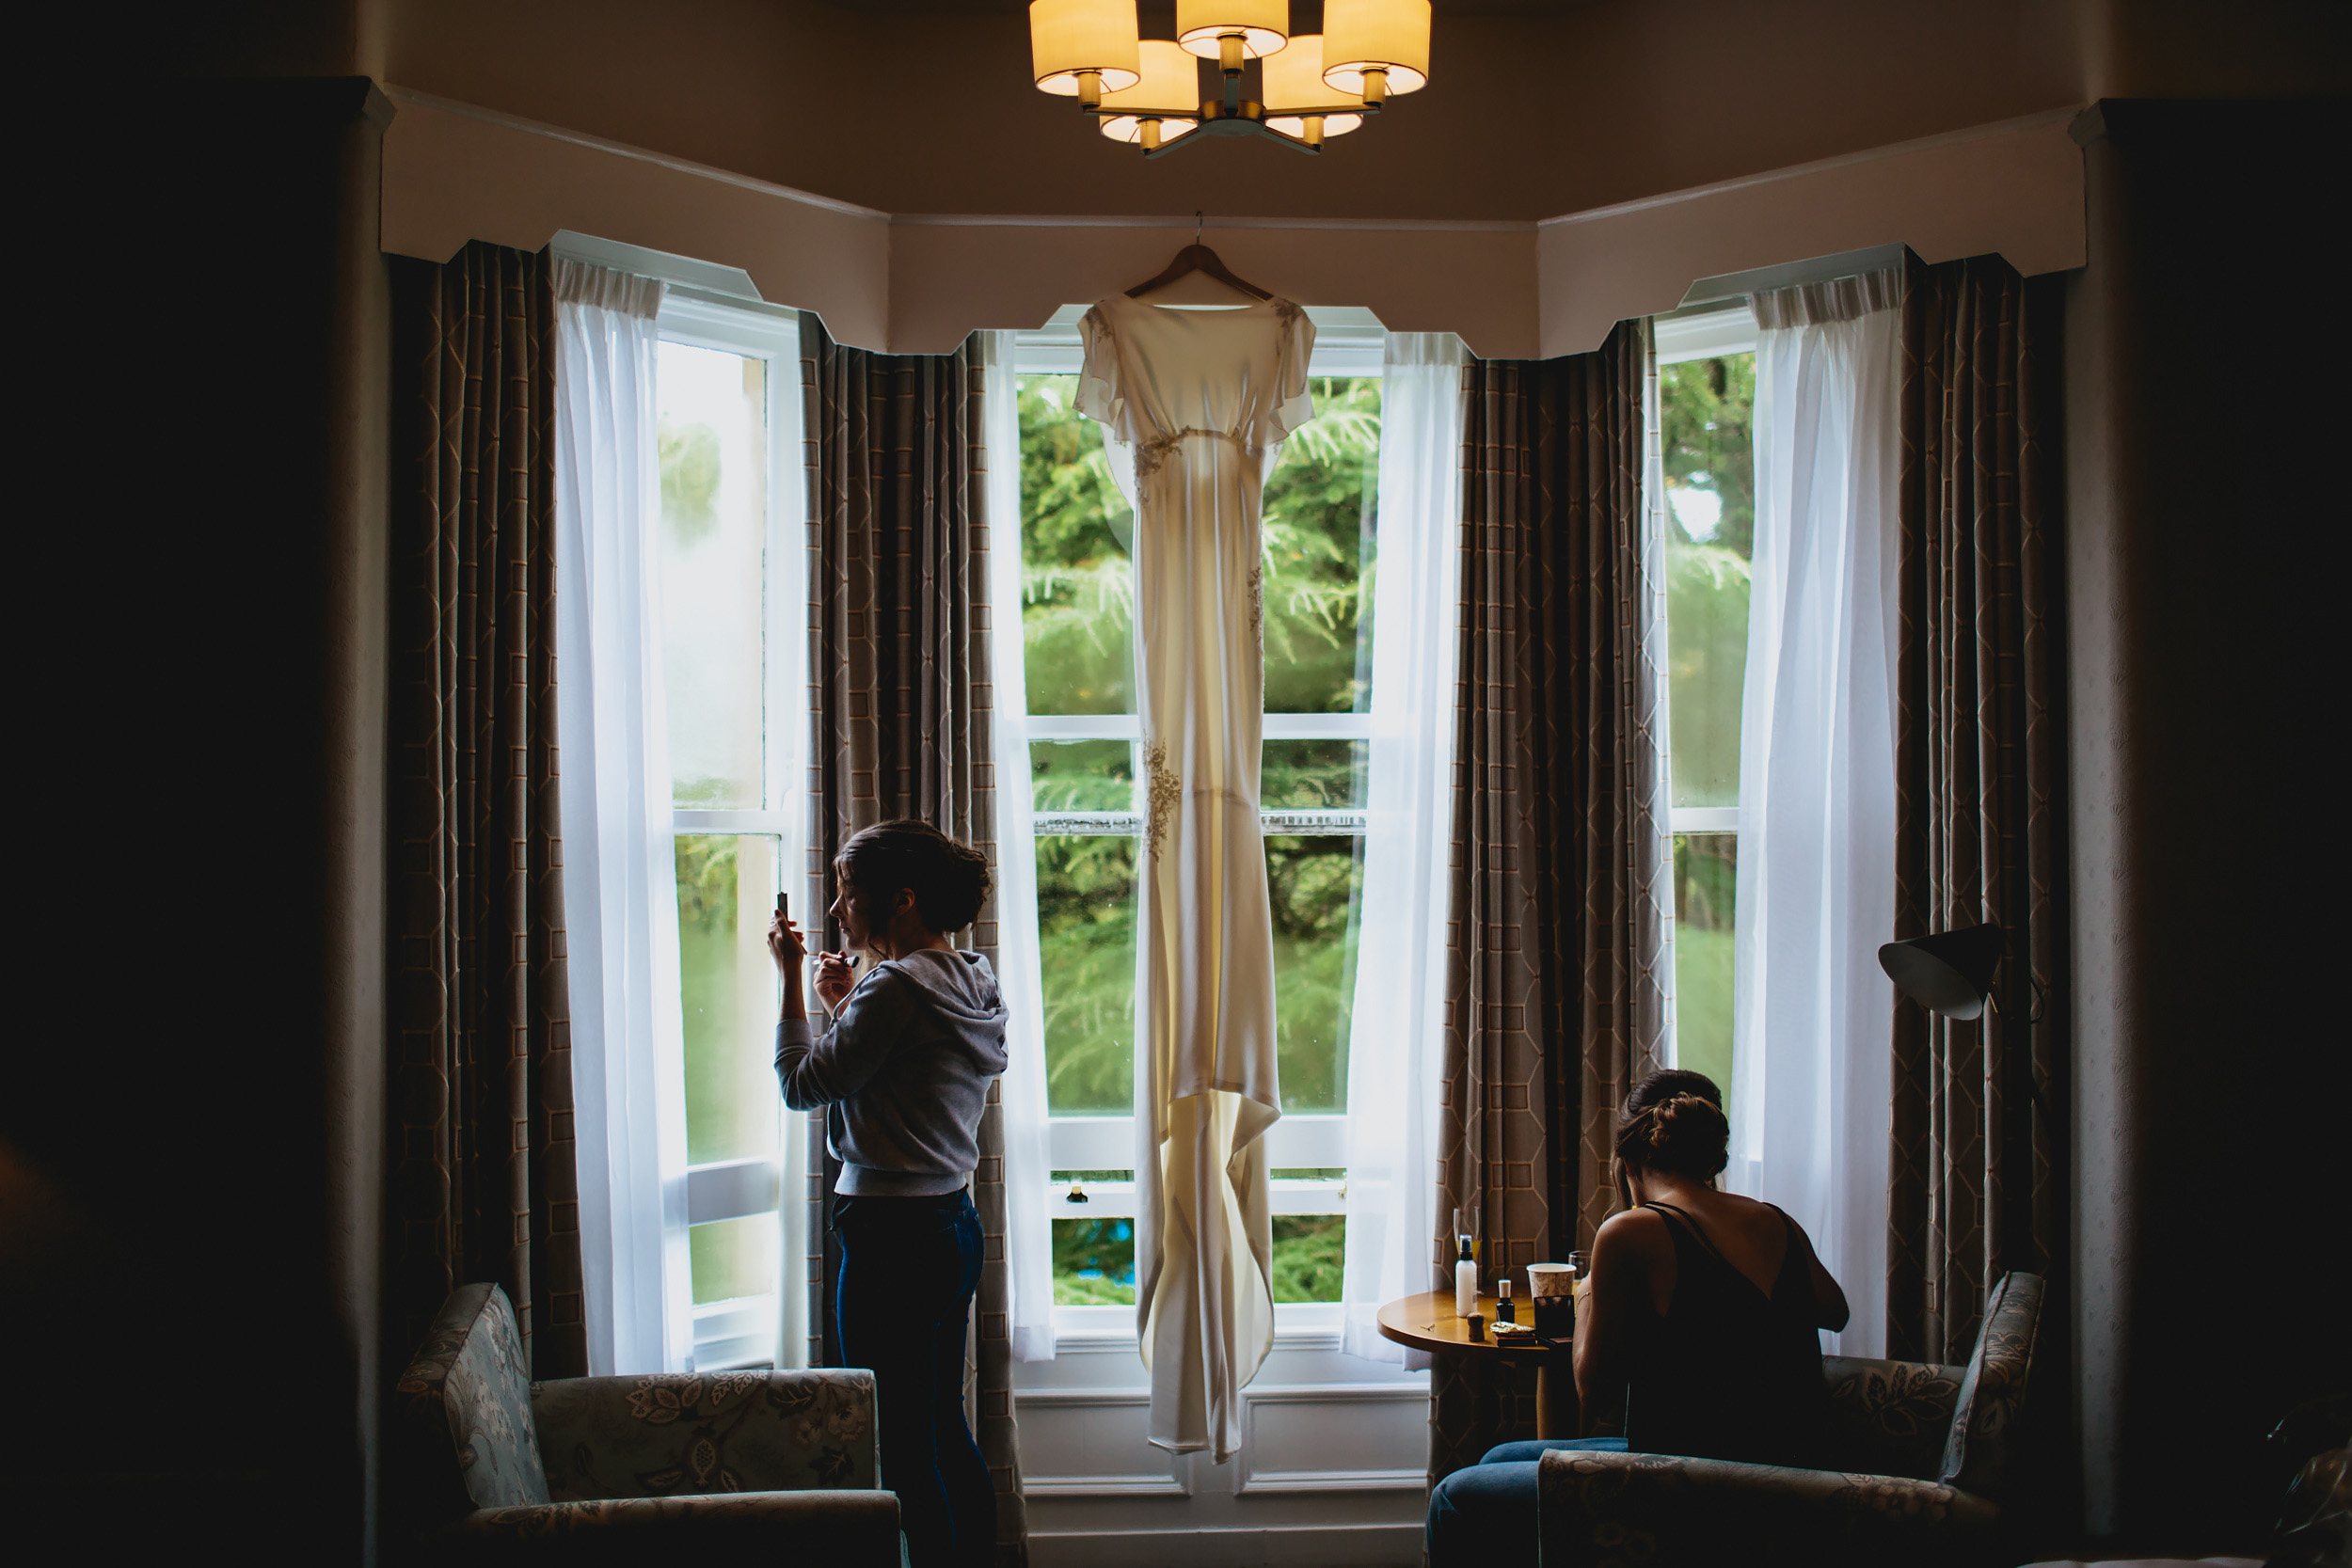 Wedding dress hanging in the window while bridesmaids apply make up